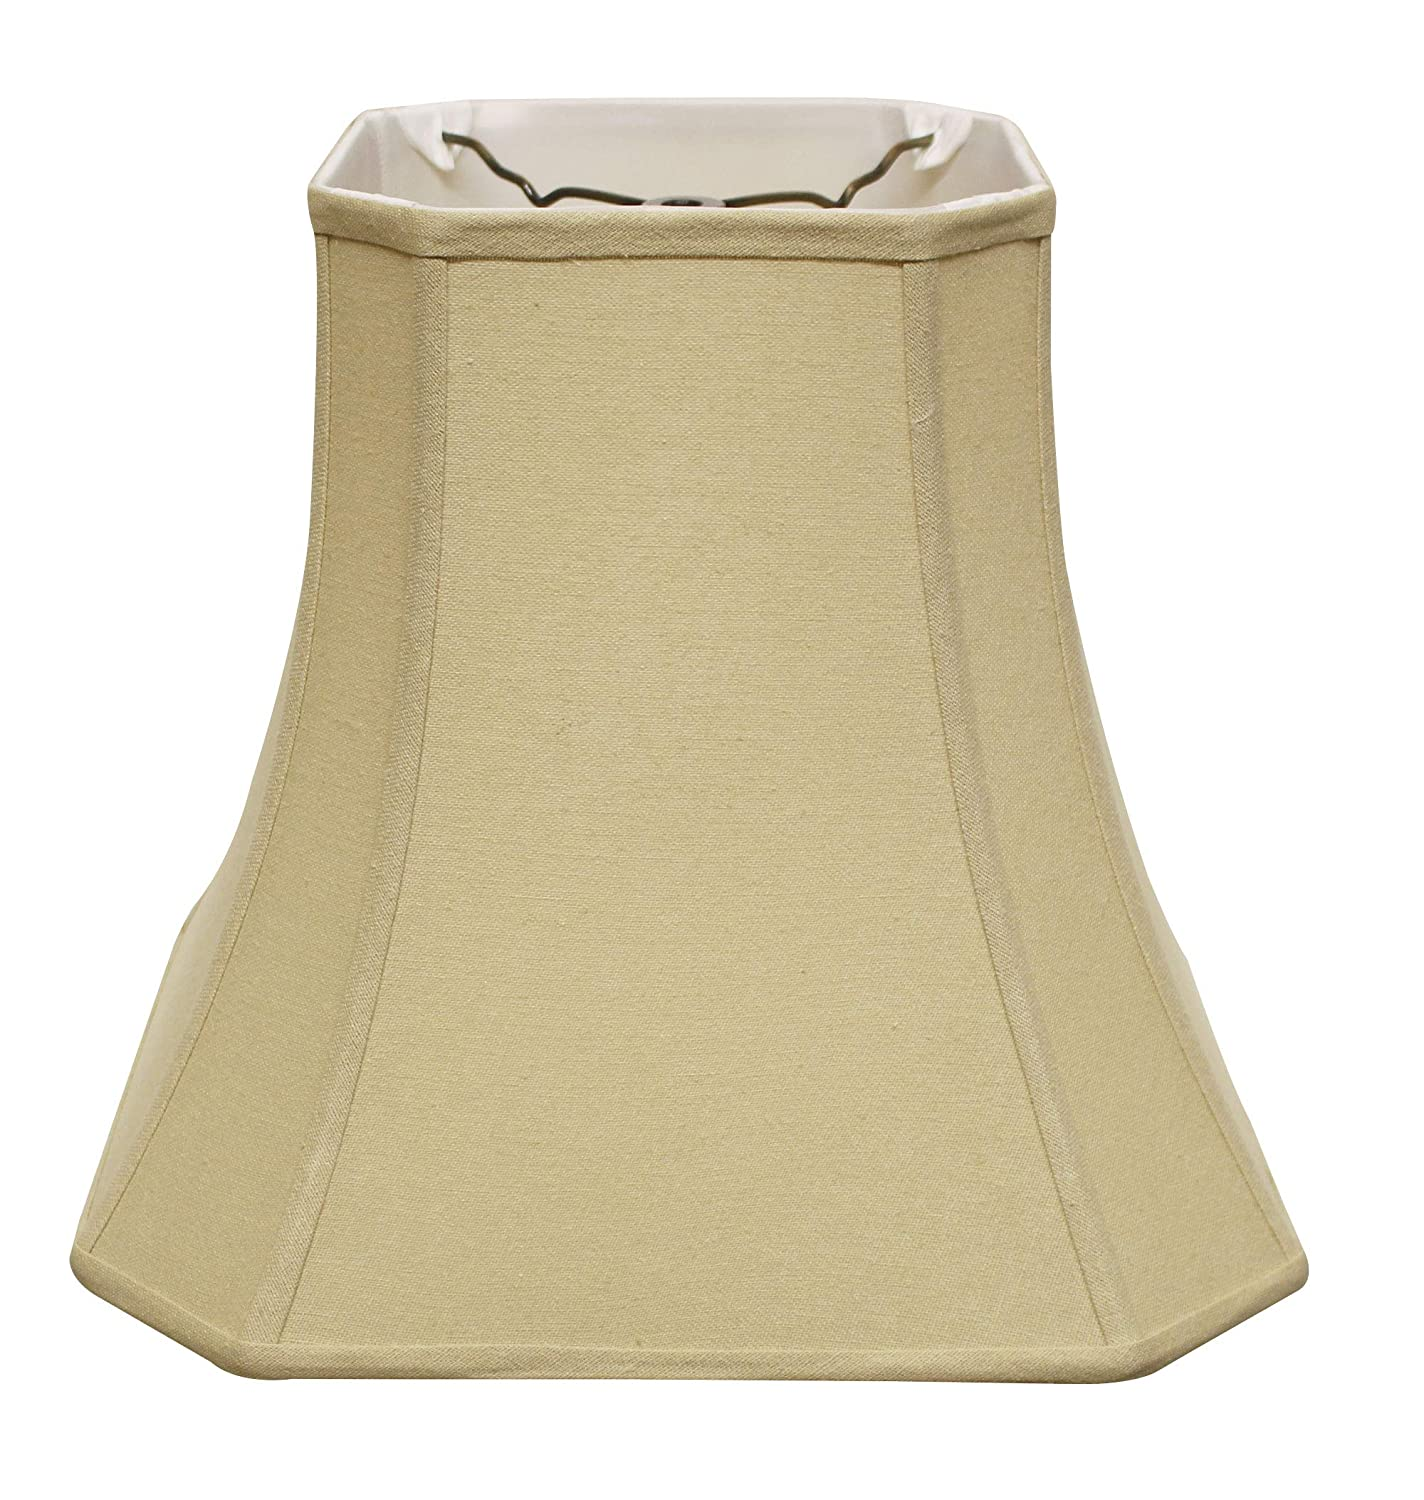 Black Slant Cut Corner Square Bell Softback Lampshade with Washer Fitter , SI05030 with Bronze Lining